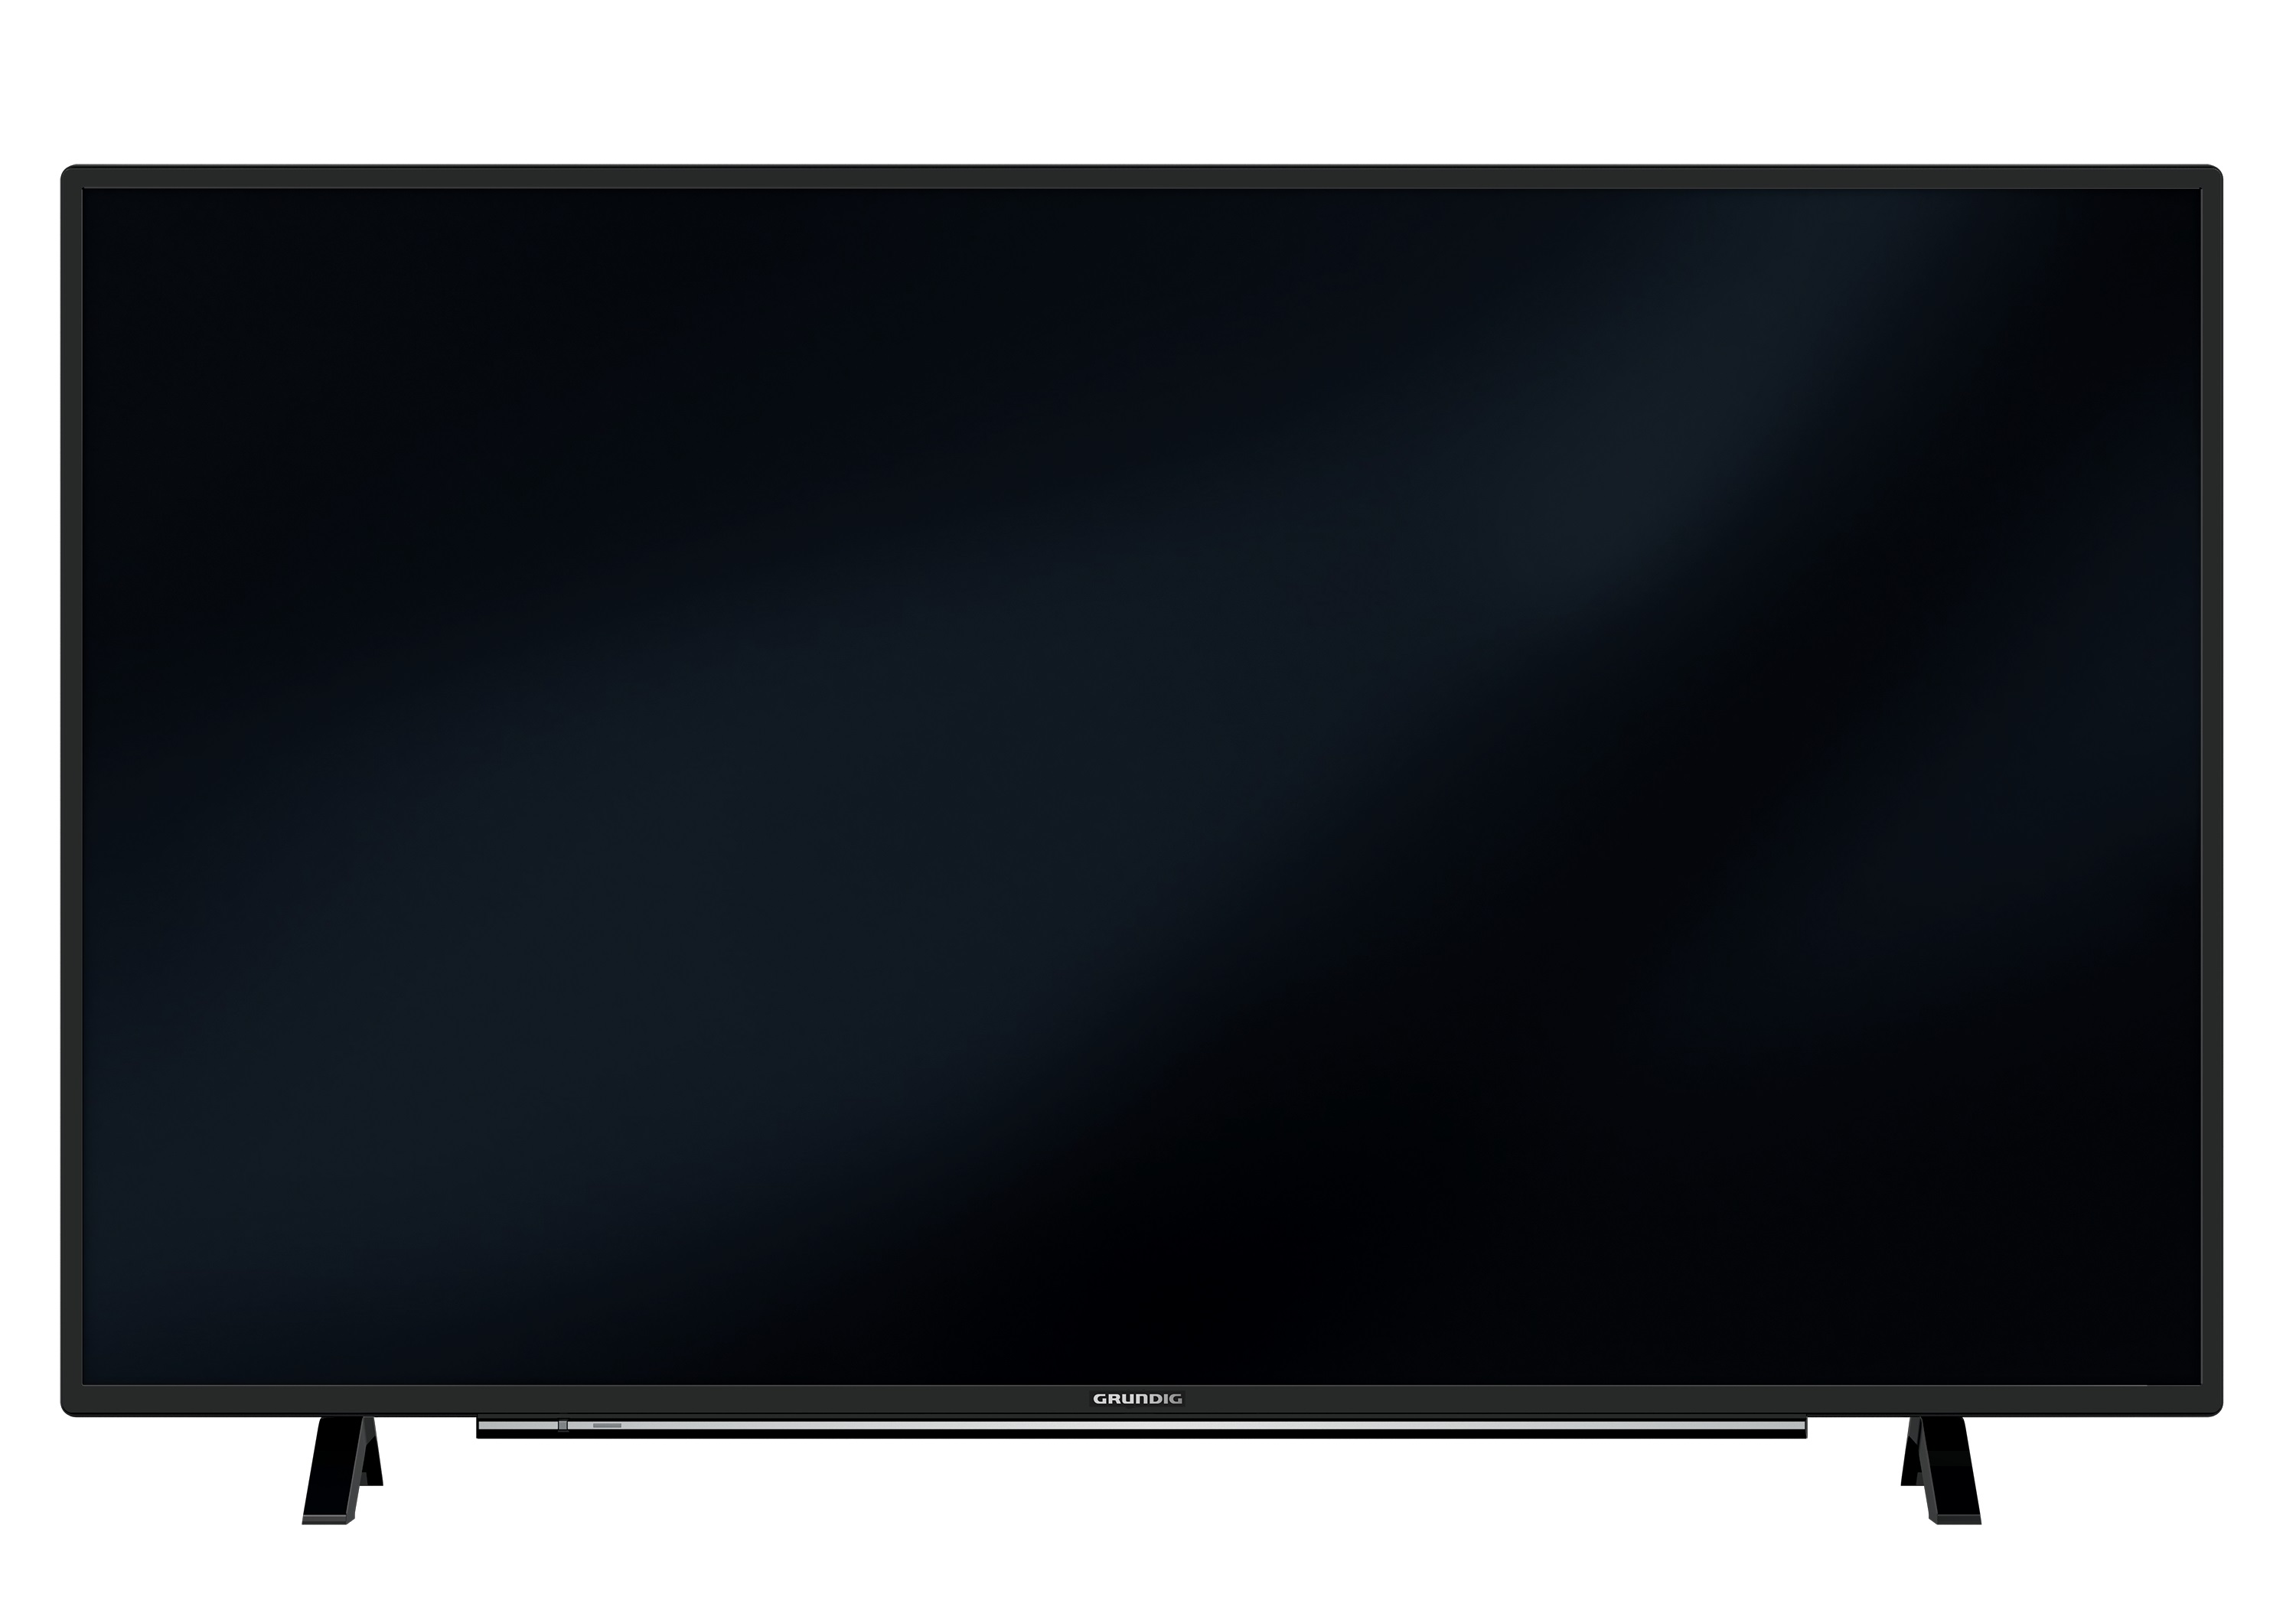 GM LED TV